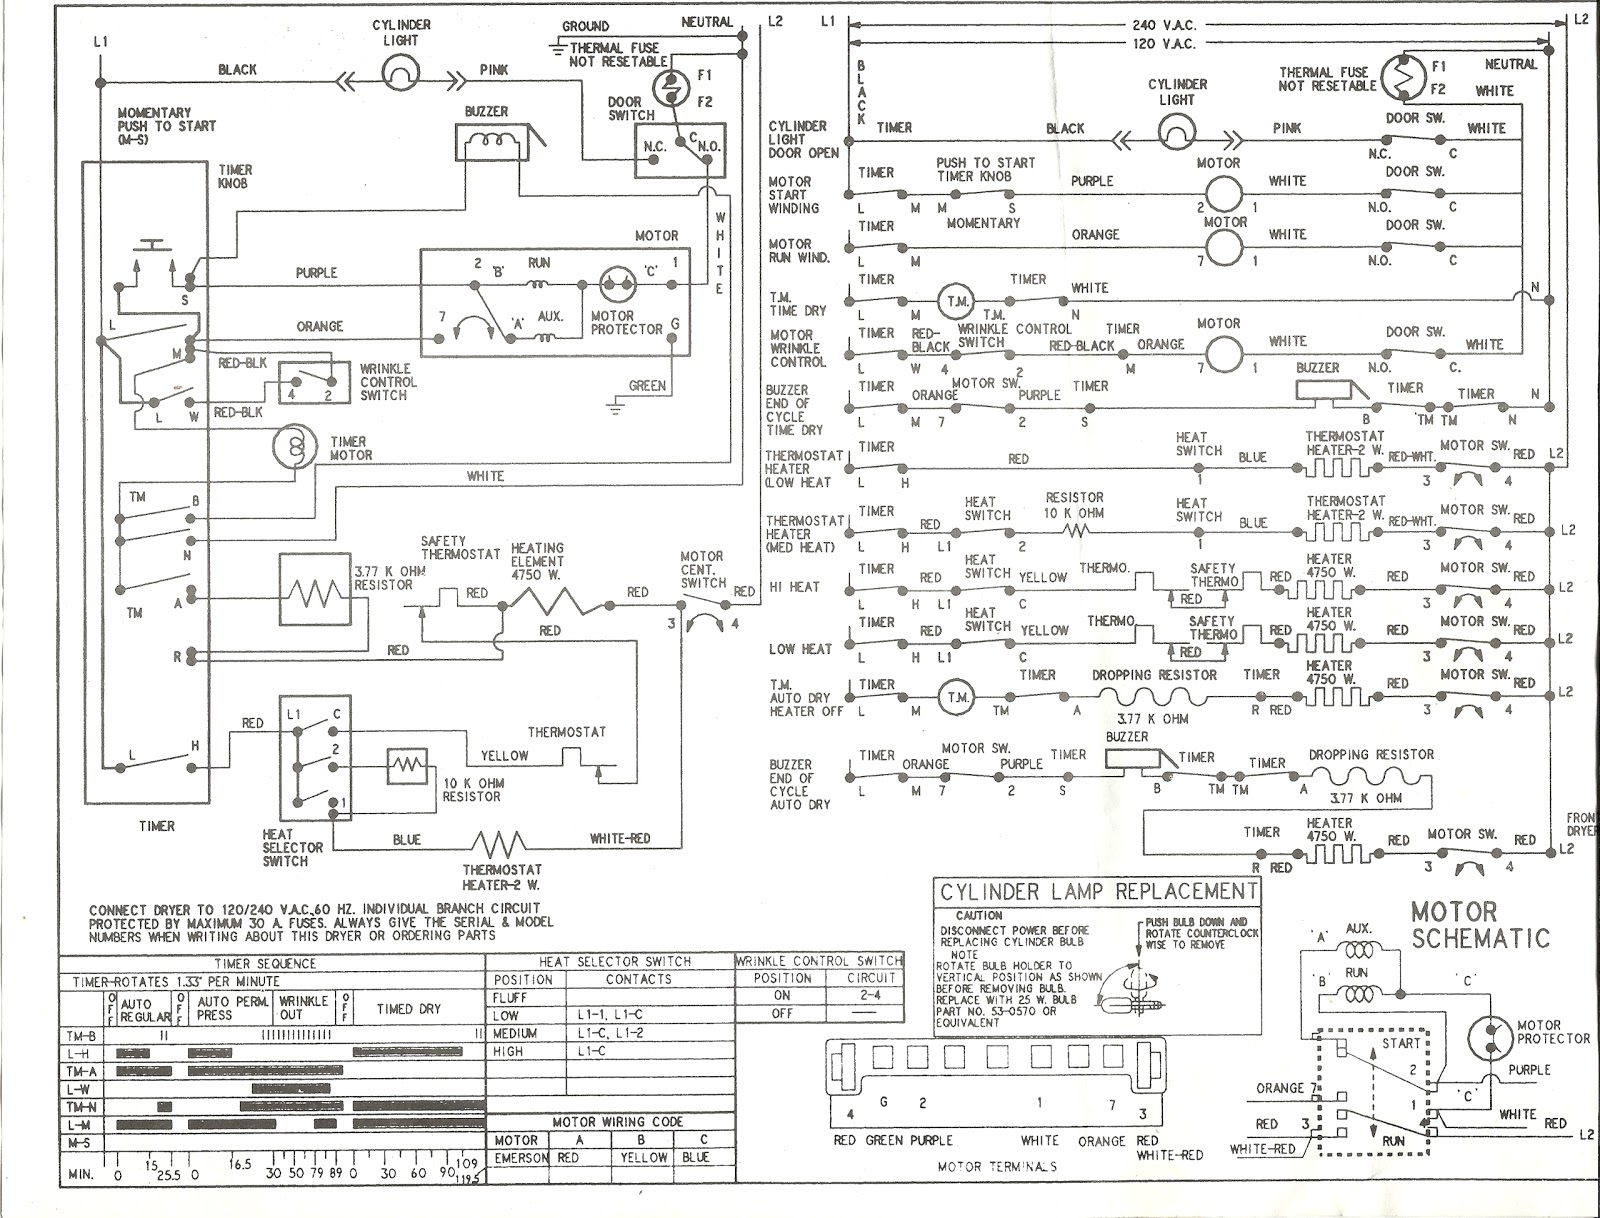 kenmore washer wiring diagram on wiring diagram parts wiring for kenmore 80 series washer parts diagram wiring diagram for whirlpool washer on wiring download wirning  at mr168.co